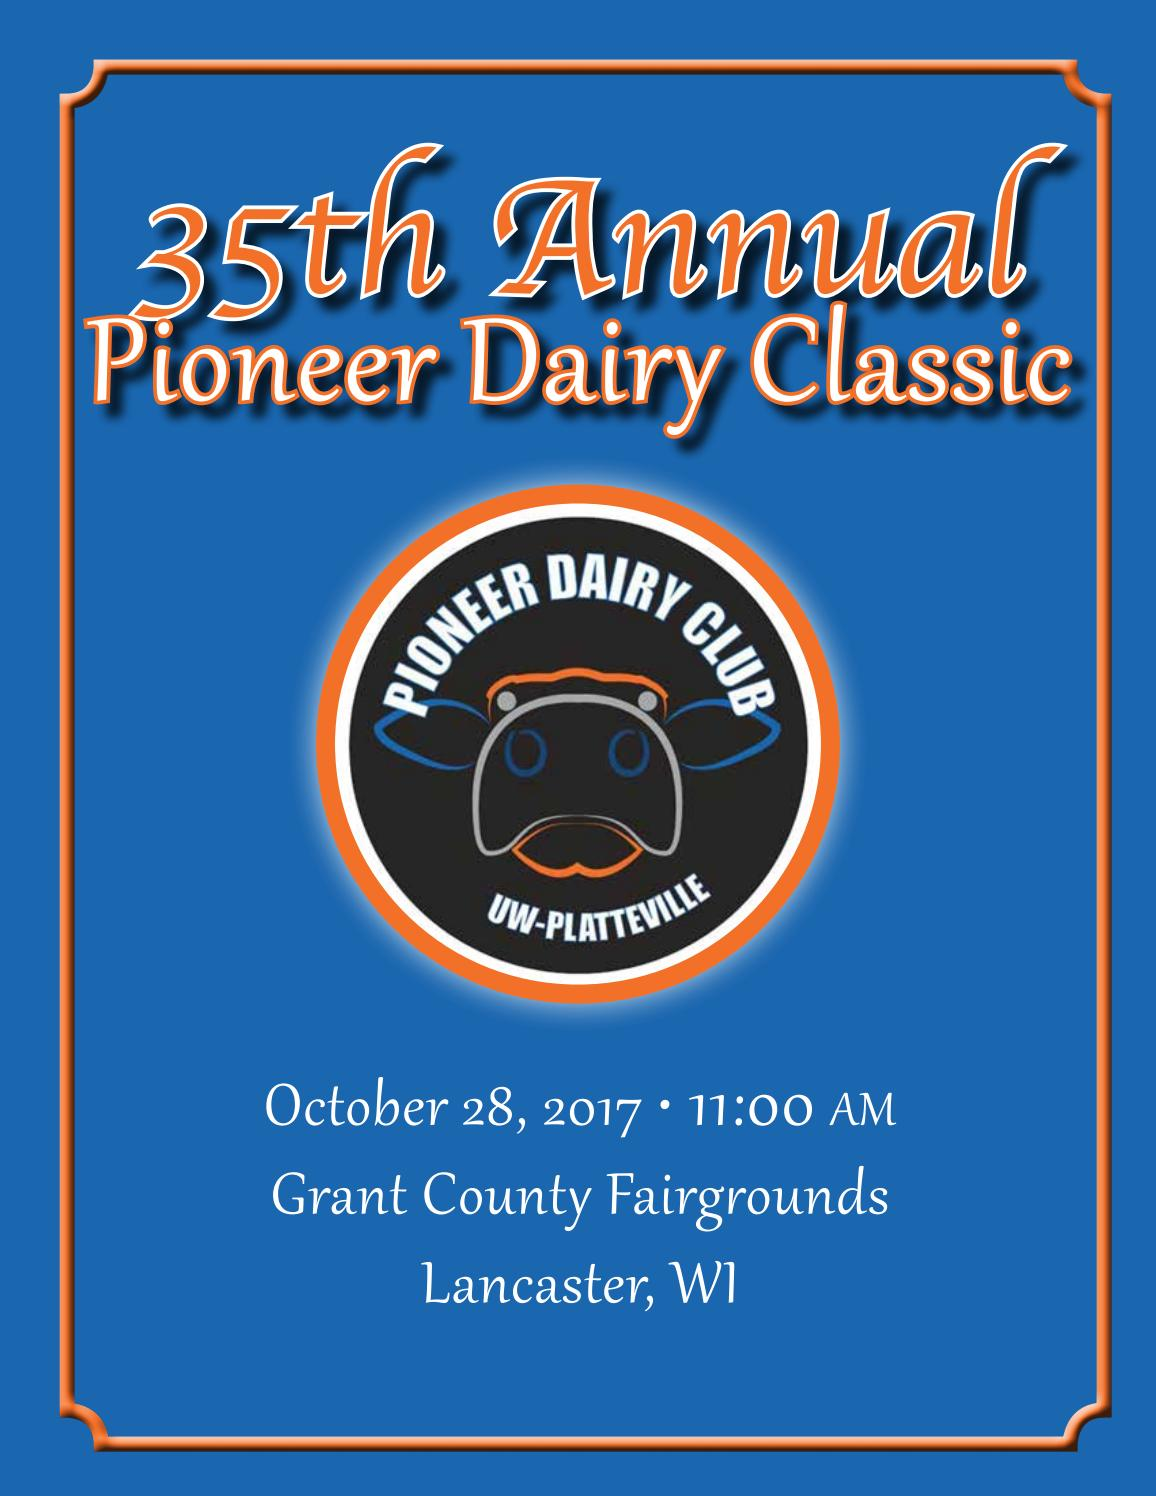 35th Annual Pioneer Dairy Classic by Dairy Agenda Today - issuu 5fb0ee13495a